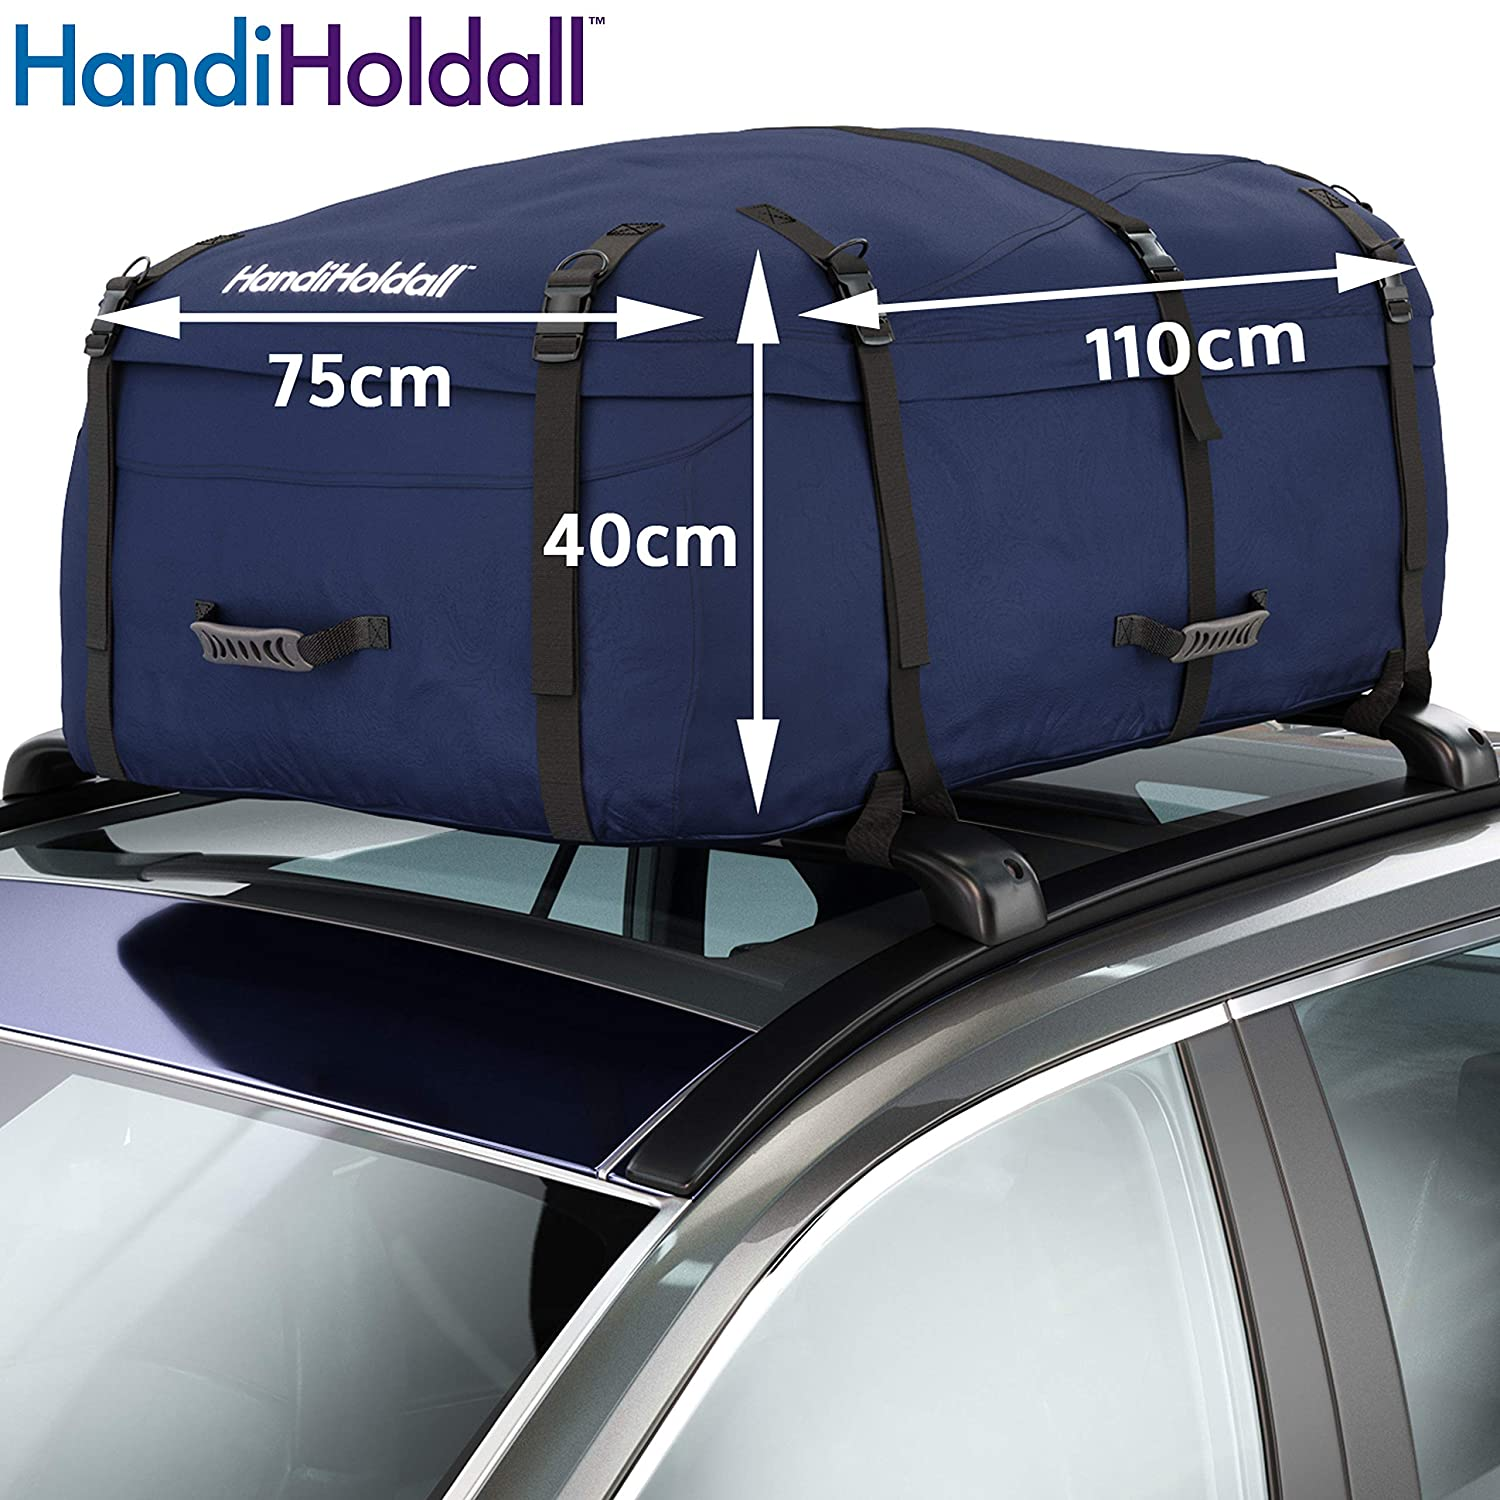 253939cf2db19 HandiHoldall Large Vehicle Roof Bag / Top Box (Navy Blue) – 330L Weather  Resistant Cargo Carrier